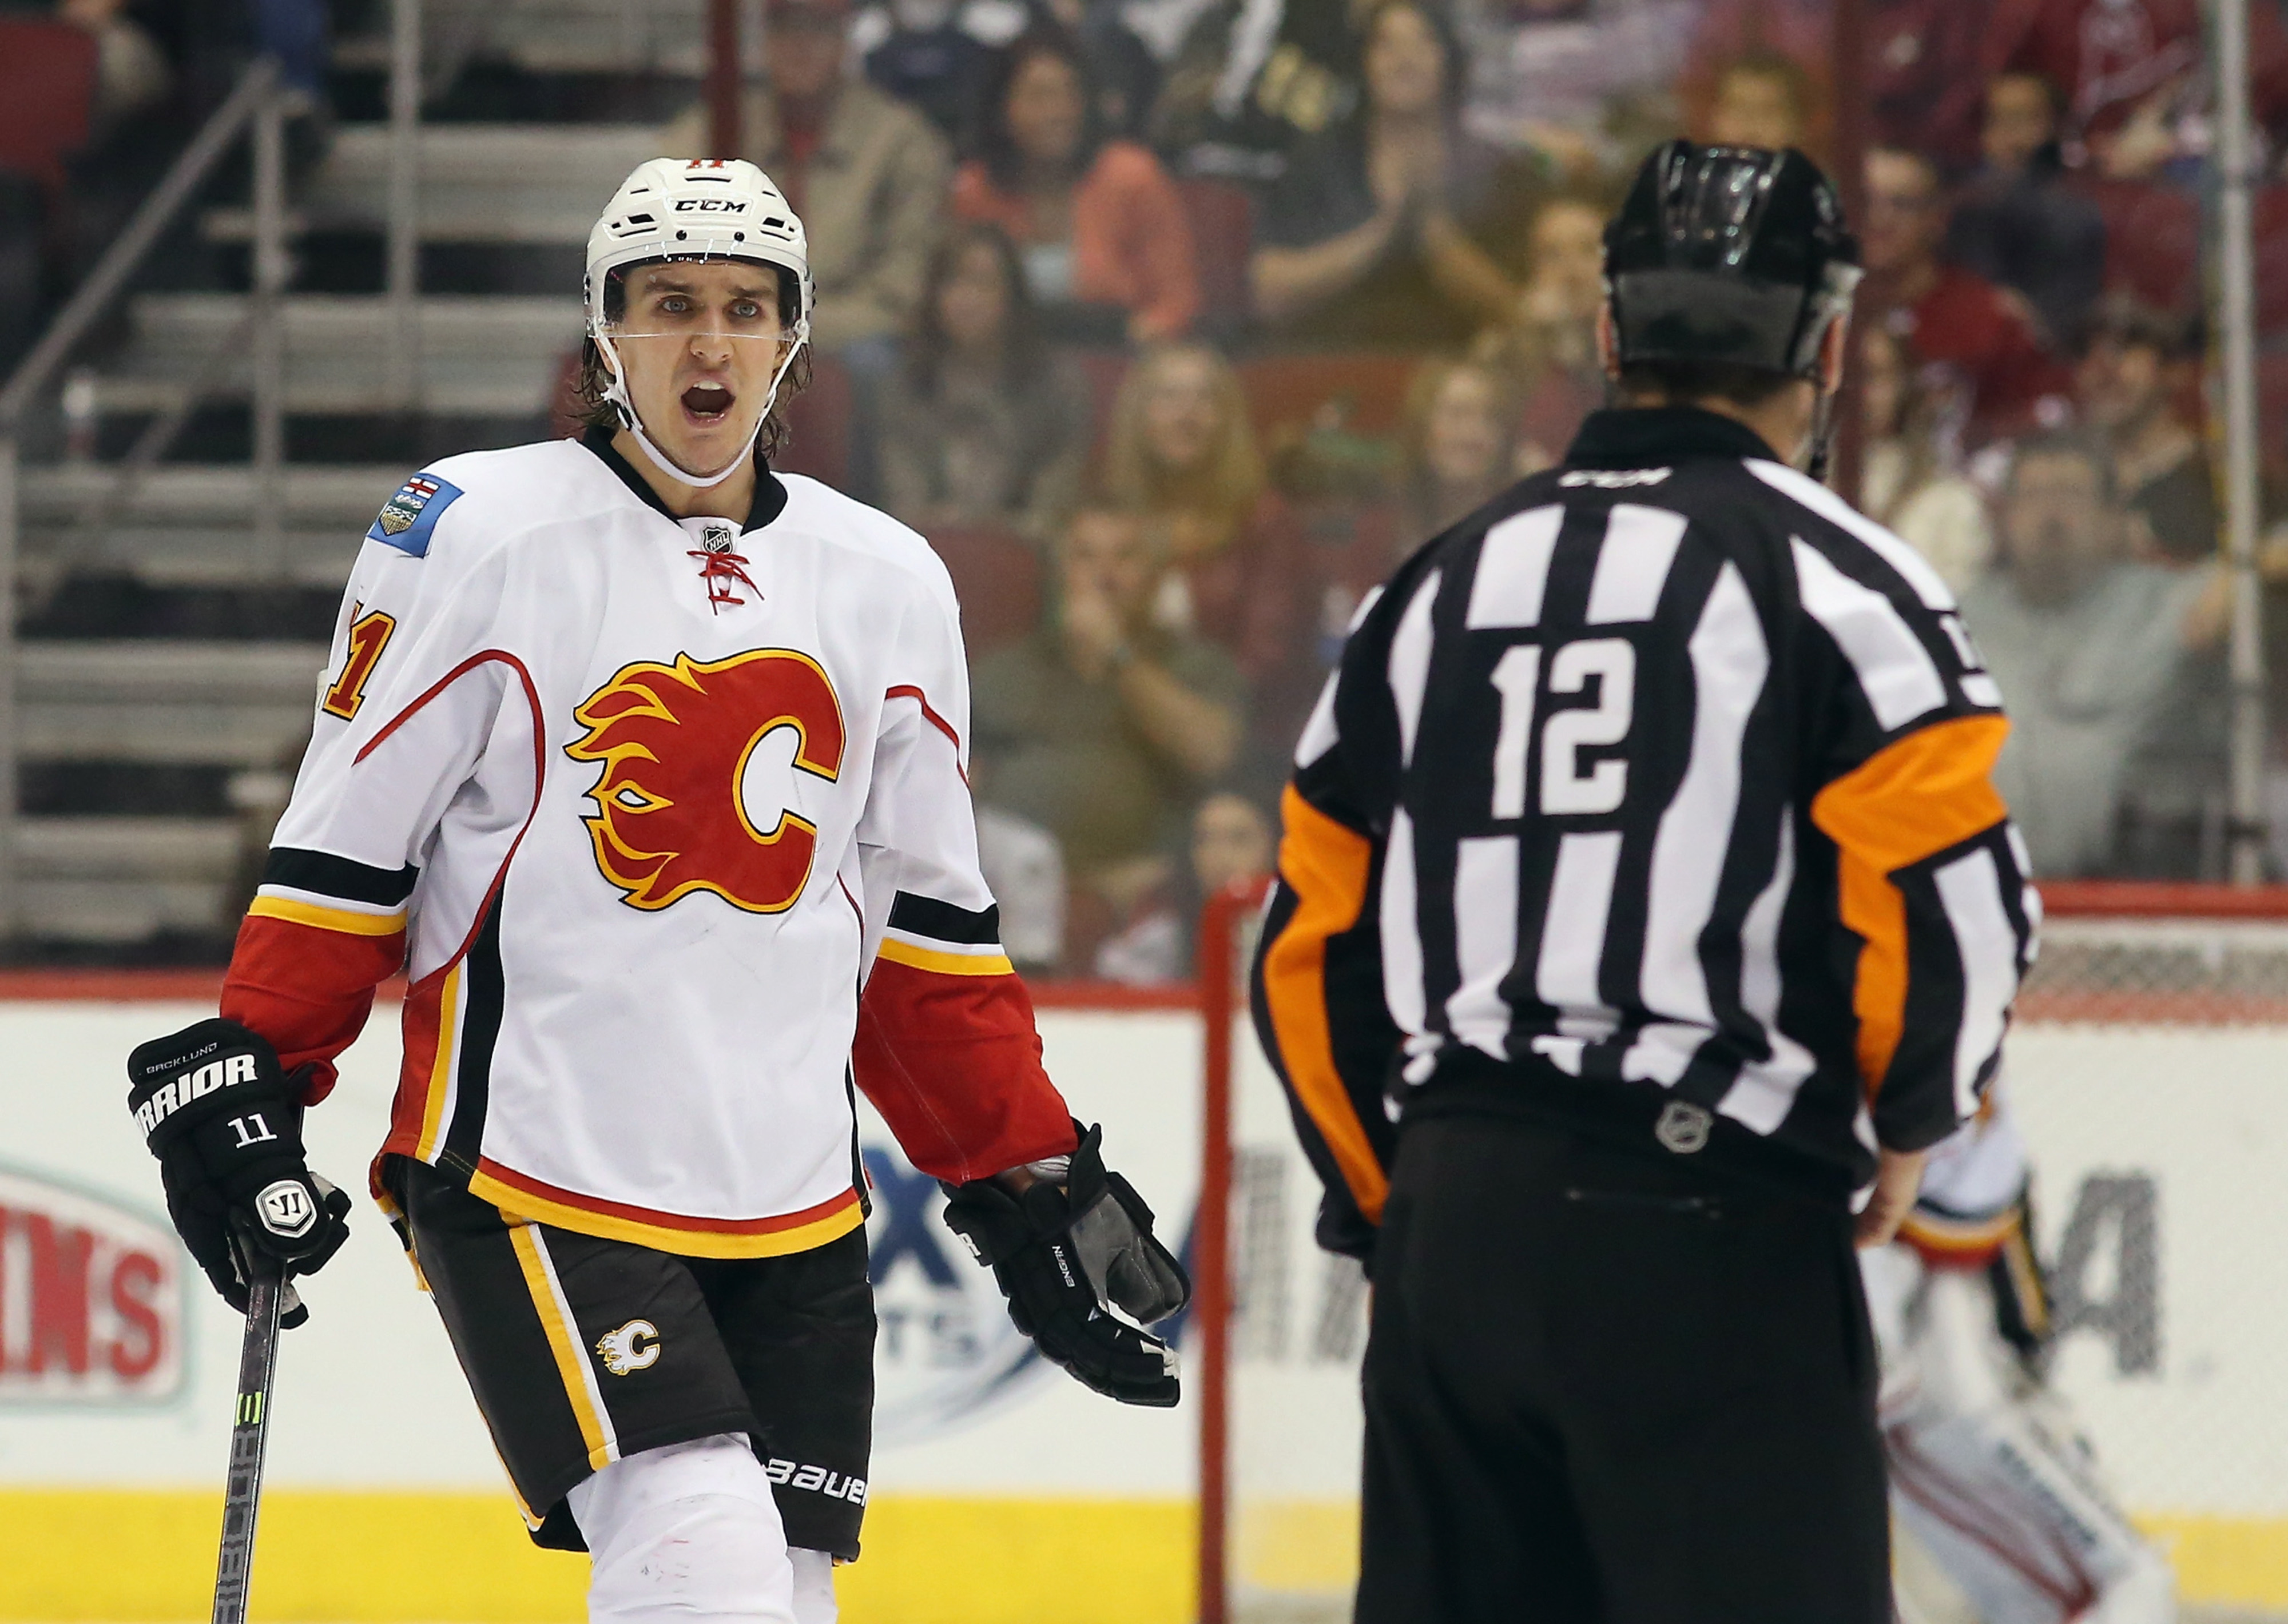 Mikael Backlund ran into some penalty trouble today.